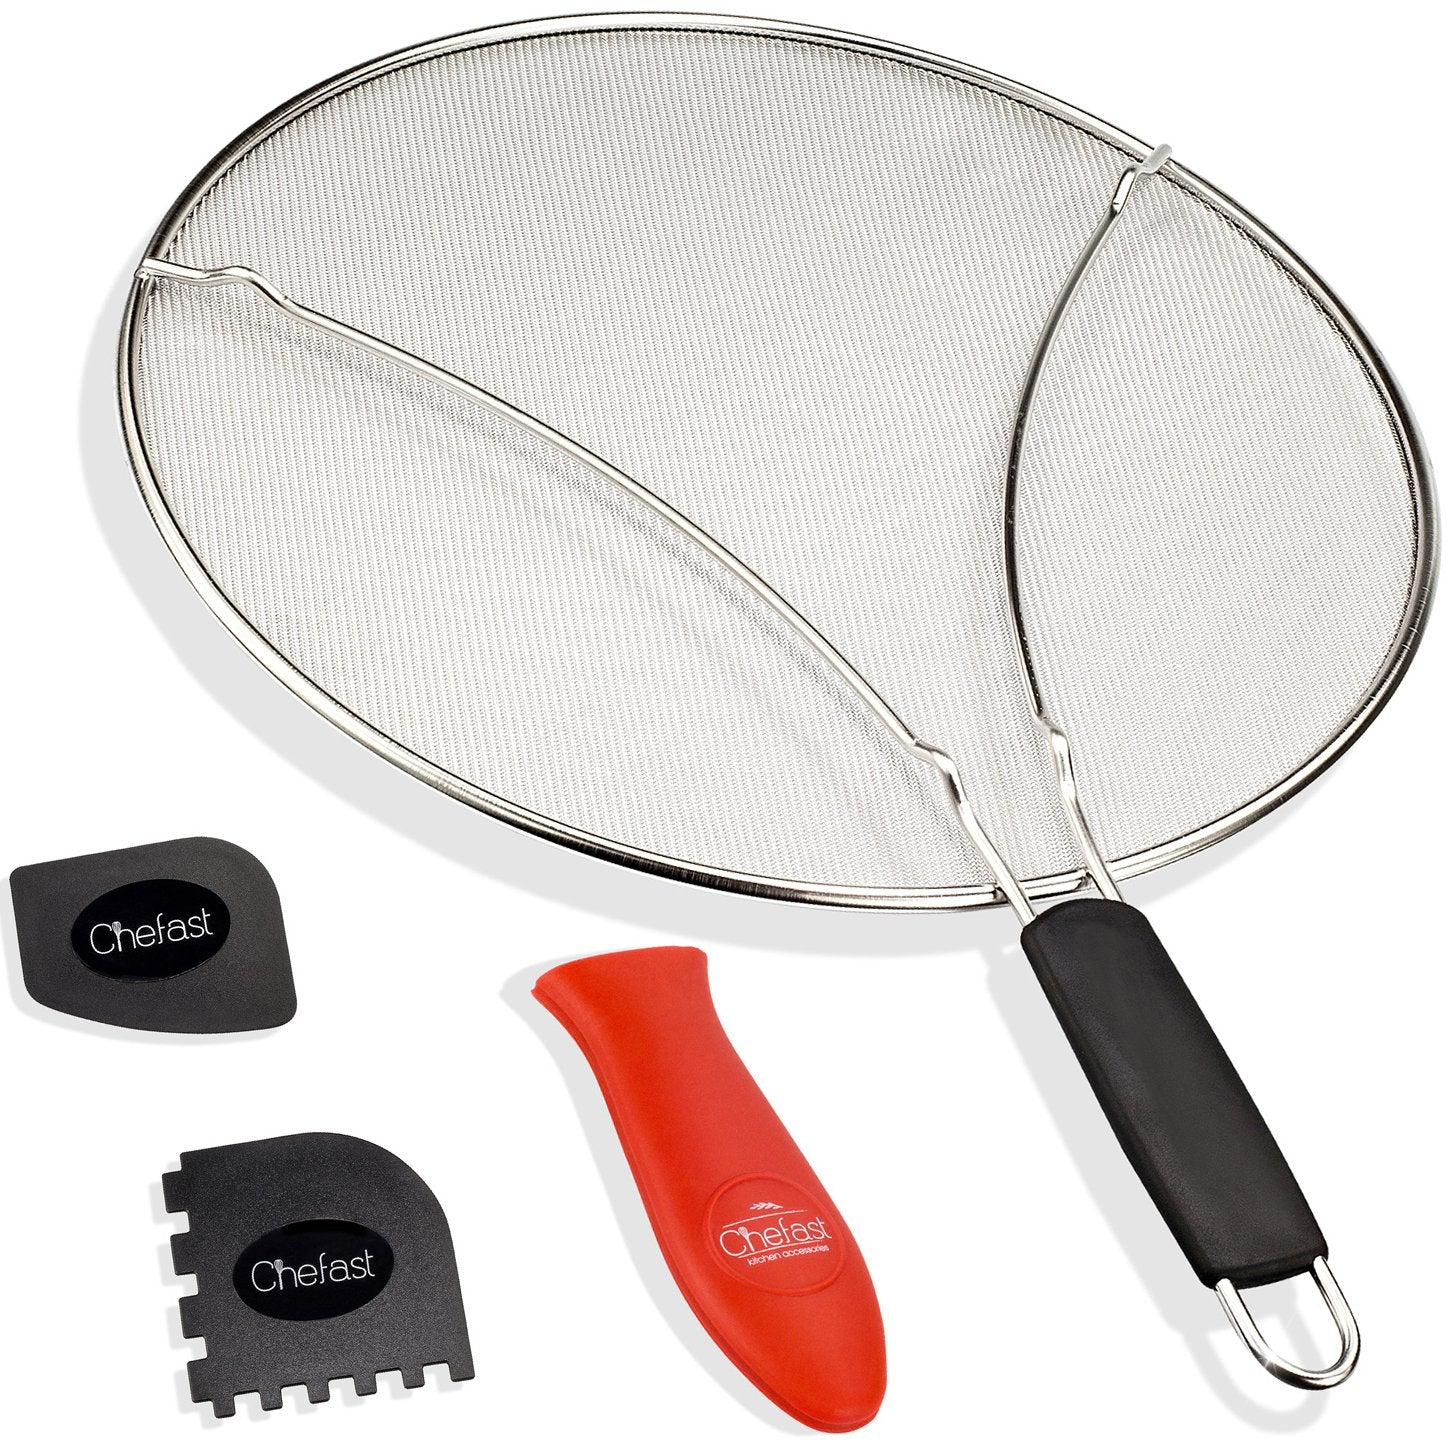 "Elite Splatter Screen Set by Chefast - Combo Kit of 9.75"" Grease Guard for Small and Medium Frying Pans, Cooking and Grill Pan Scrapers, and Silicone Hot Handle Holder - Ultra Fine Oil Splash Shield"